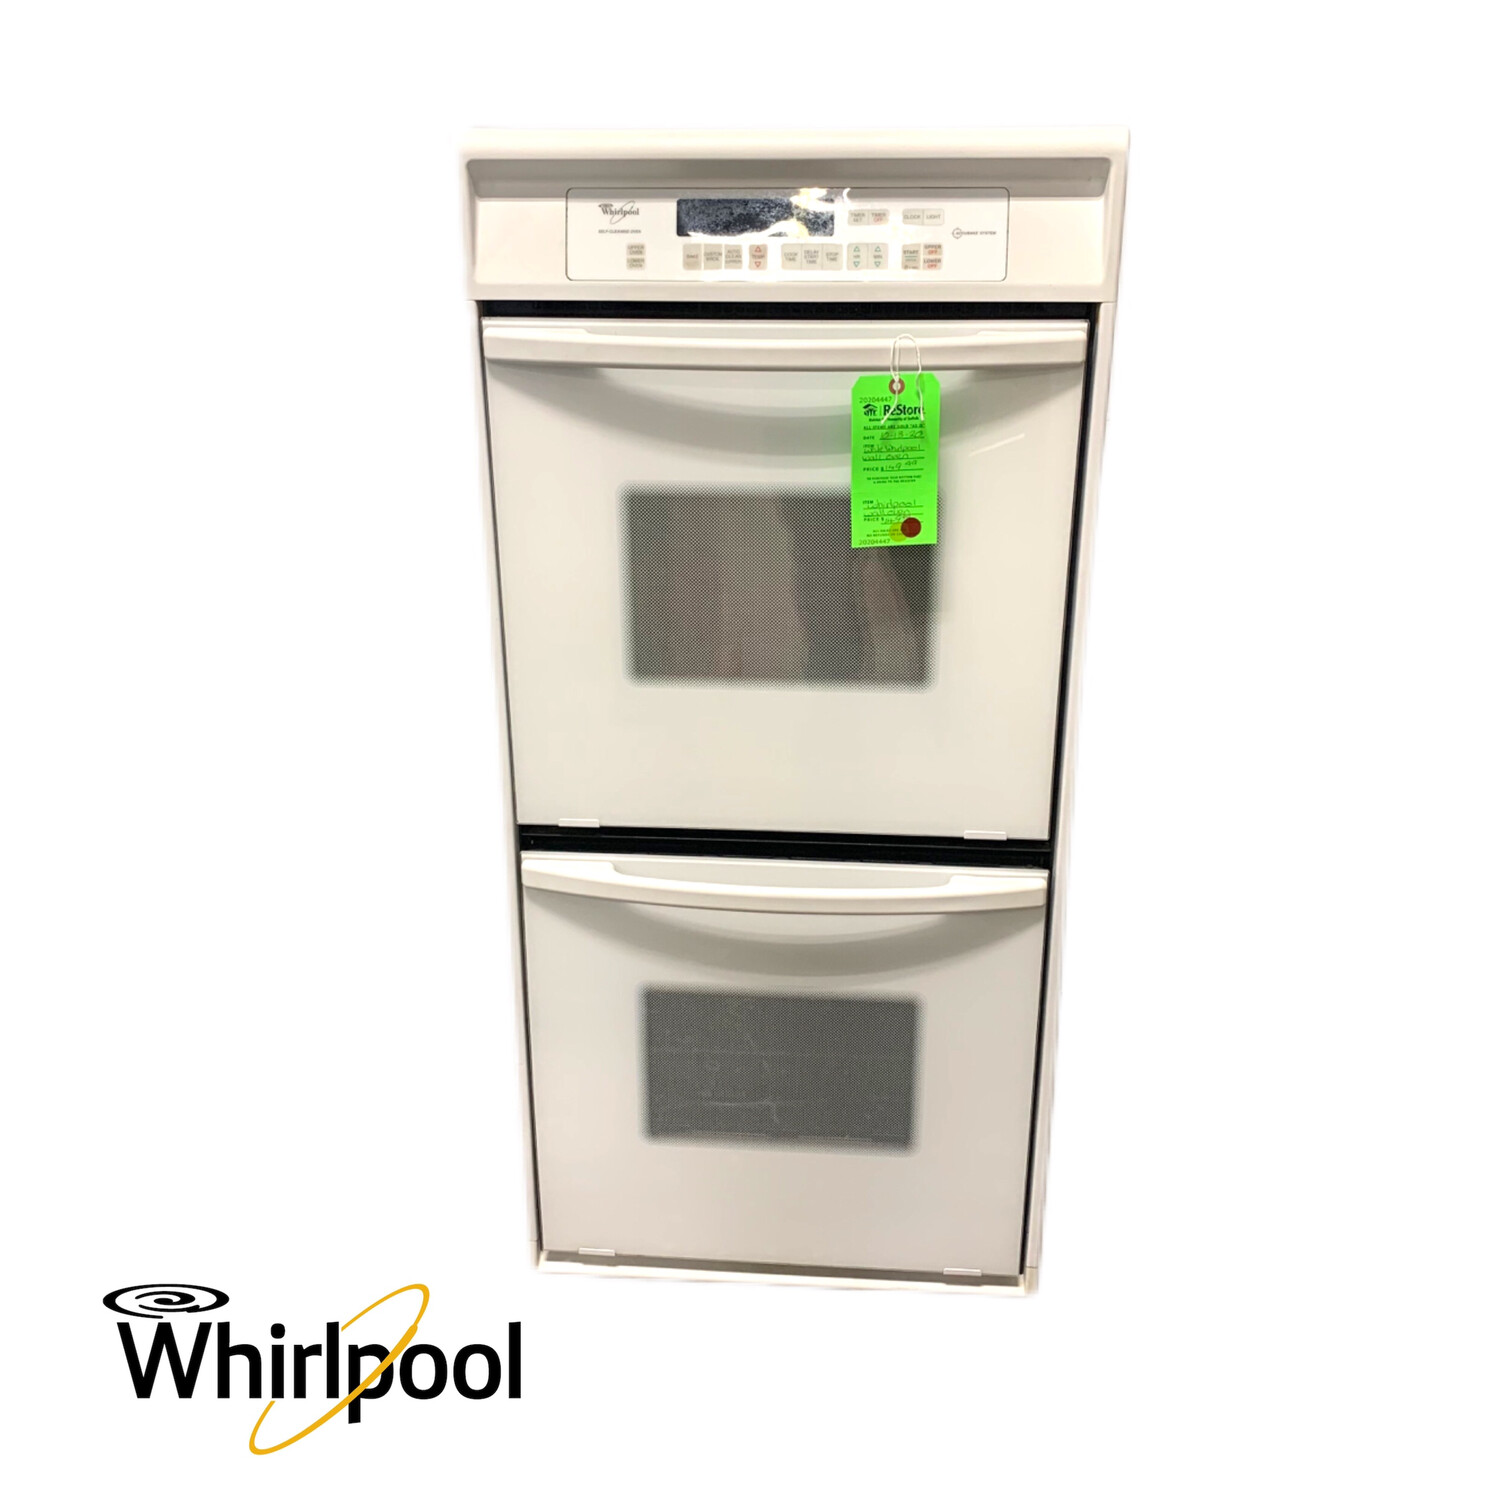 White Whirlpool Wall Oven